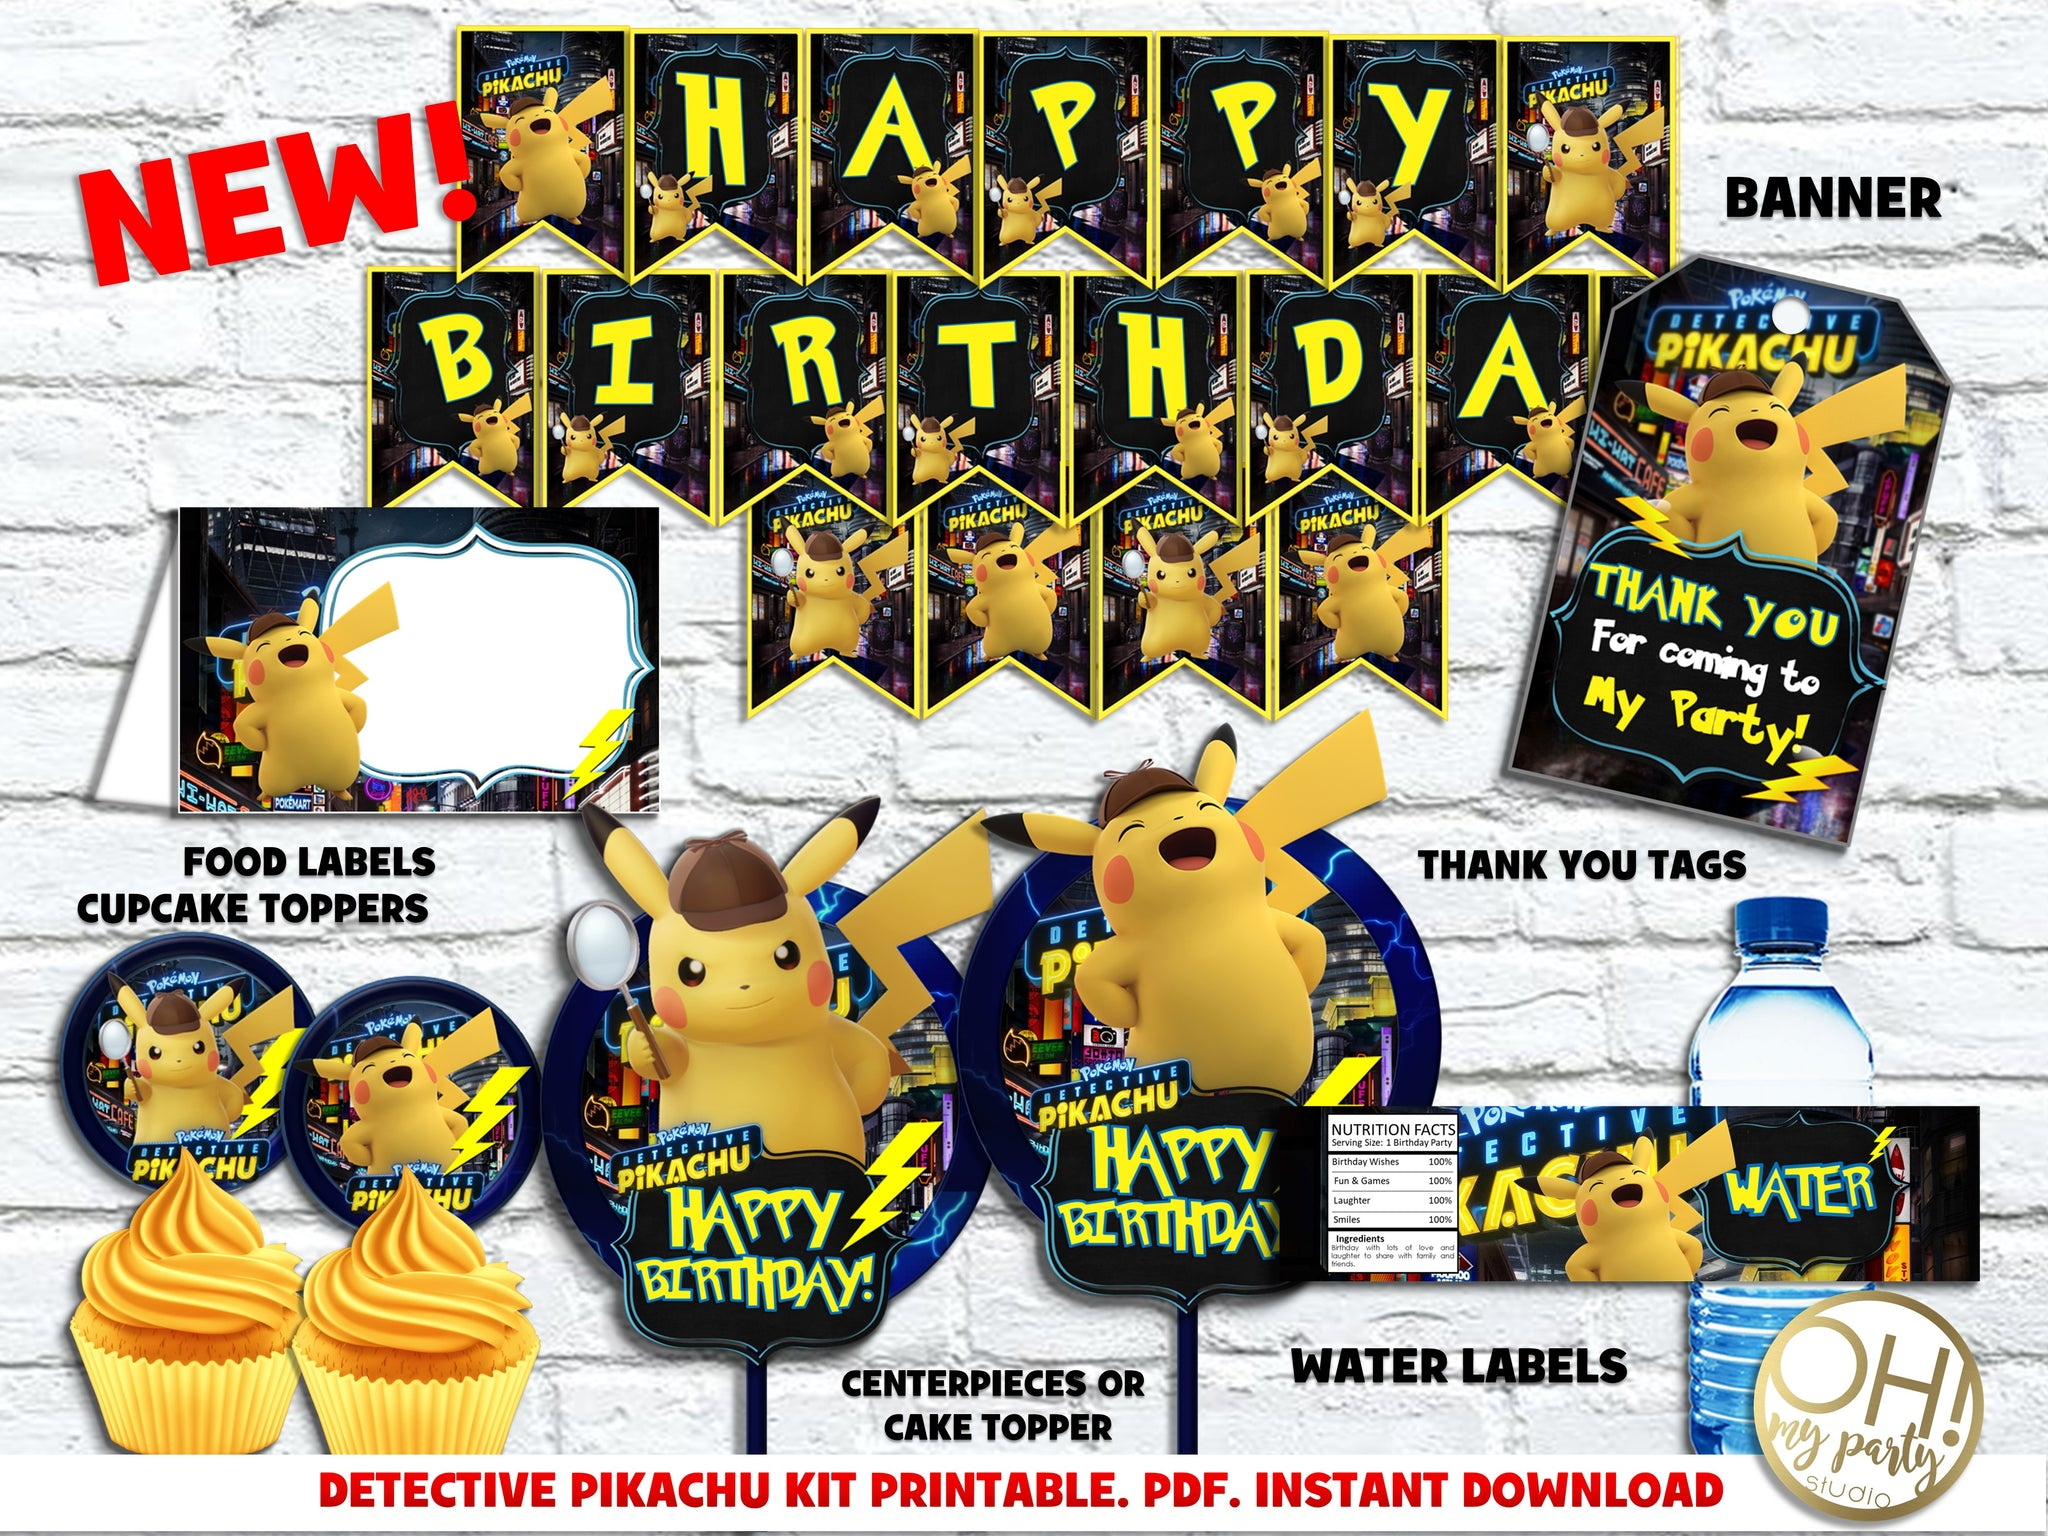 DETECTIVE PIKACHU KIT PRINTABLE, DETECTIVE PIKACHU DECORATIONS, DETECTIVE PIKACHU BANNER, DETECTIVE PIKACHU BIRTHDAY PARTY, DETECTIVE PIKACHU BIRTHDAY, DETECTIVE PIKACHU THANK YOU TAGS, DETECTIVE PIKACHU PARTY PRINTABLES, DETECTIVE PIKACHU INVITATION, DETECTIVE PIKACHU INVITATIONS, DETECTIVE PIKACHU PARTY IDEAS, DETECTIVE PIKACHU PACKAGE PRINTABLE, DETECTIVE PIKACHU KIT